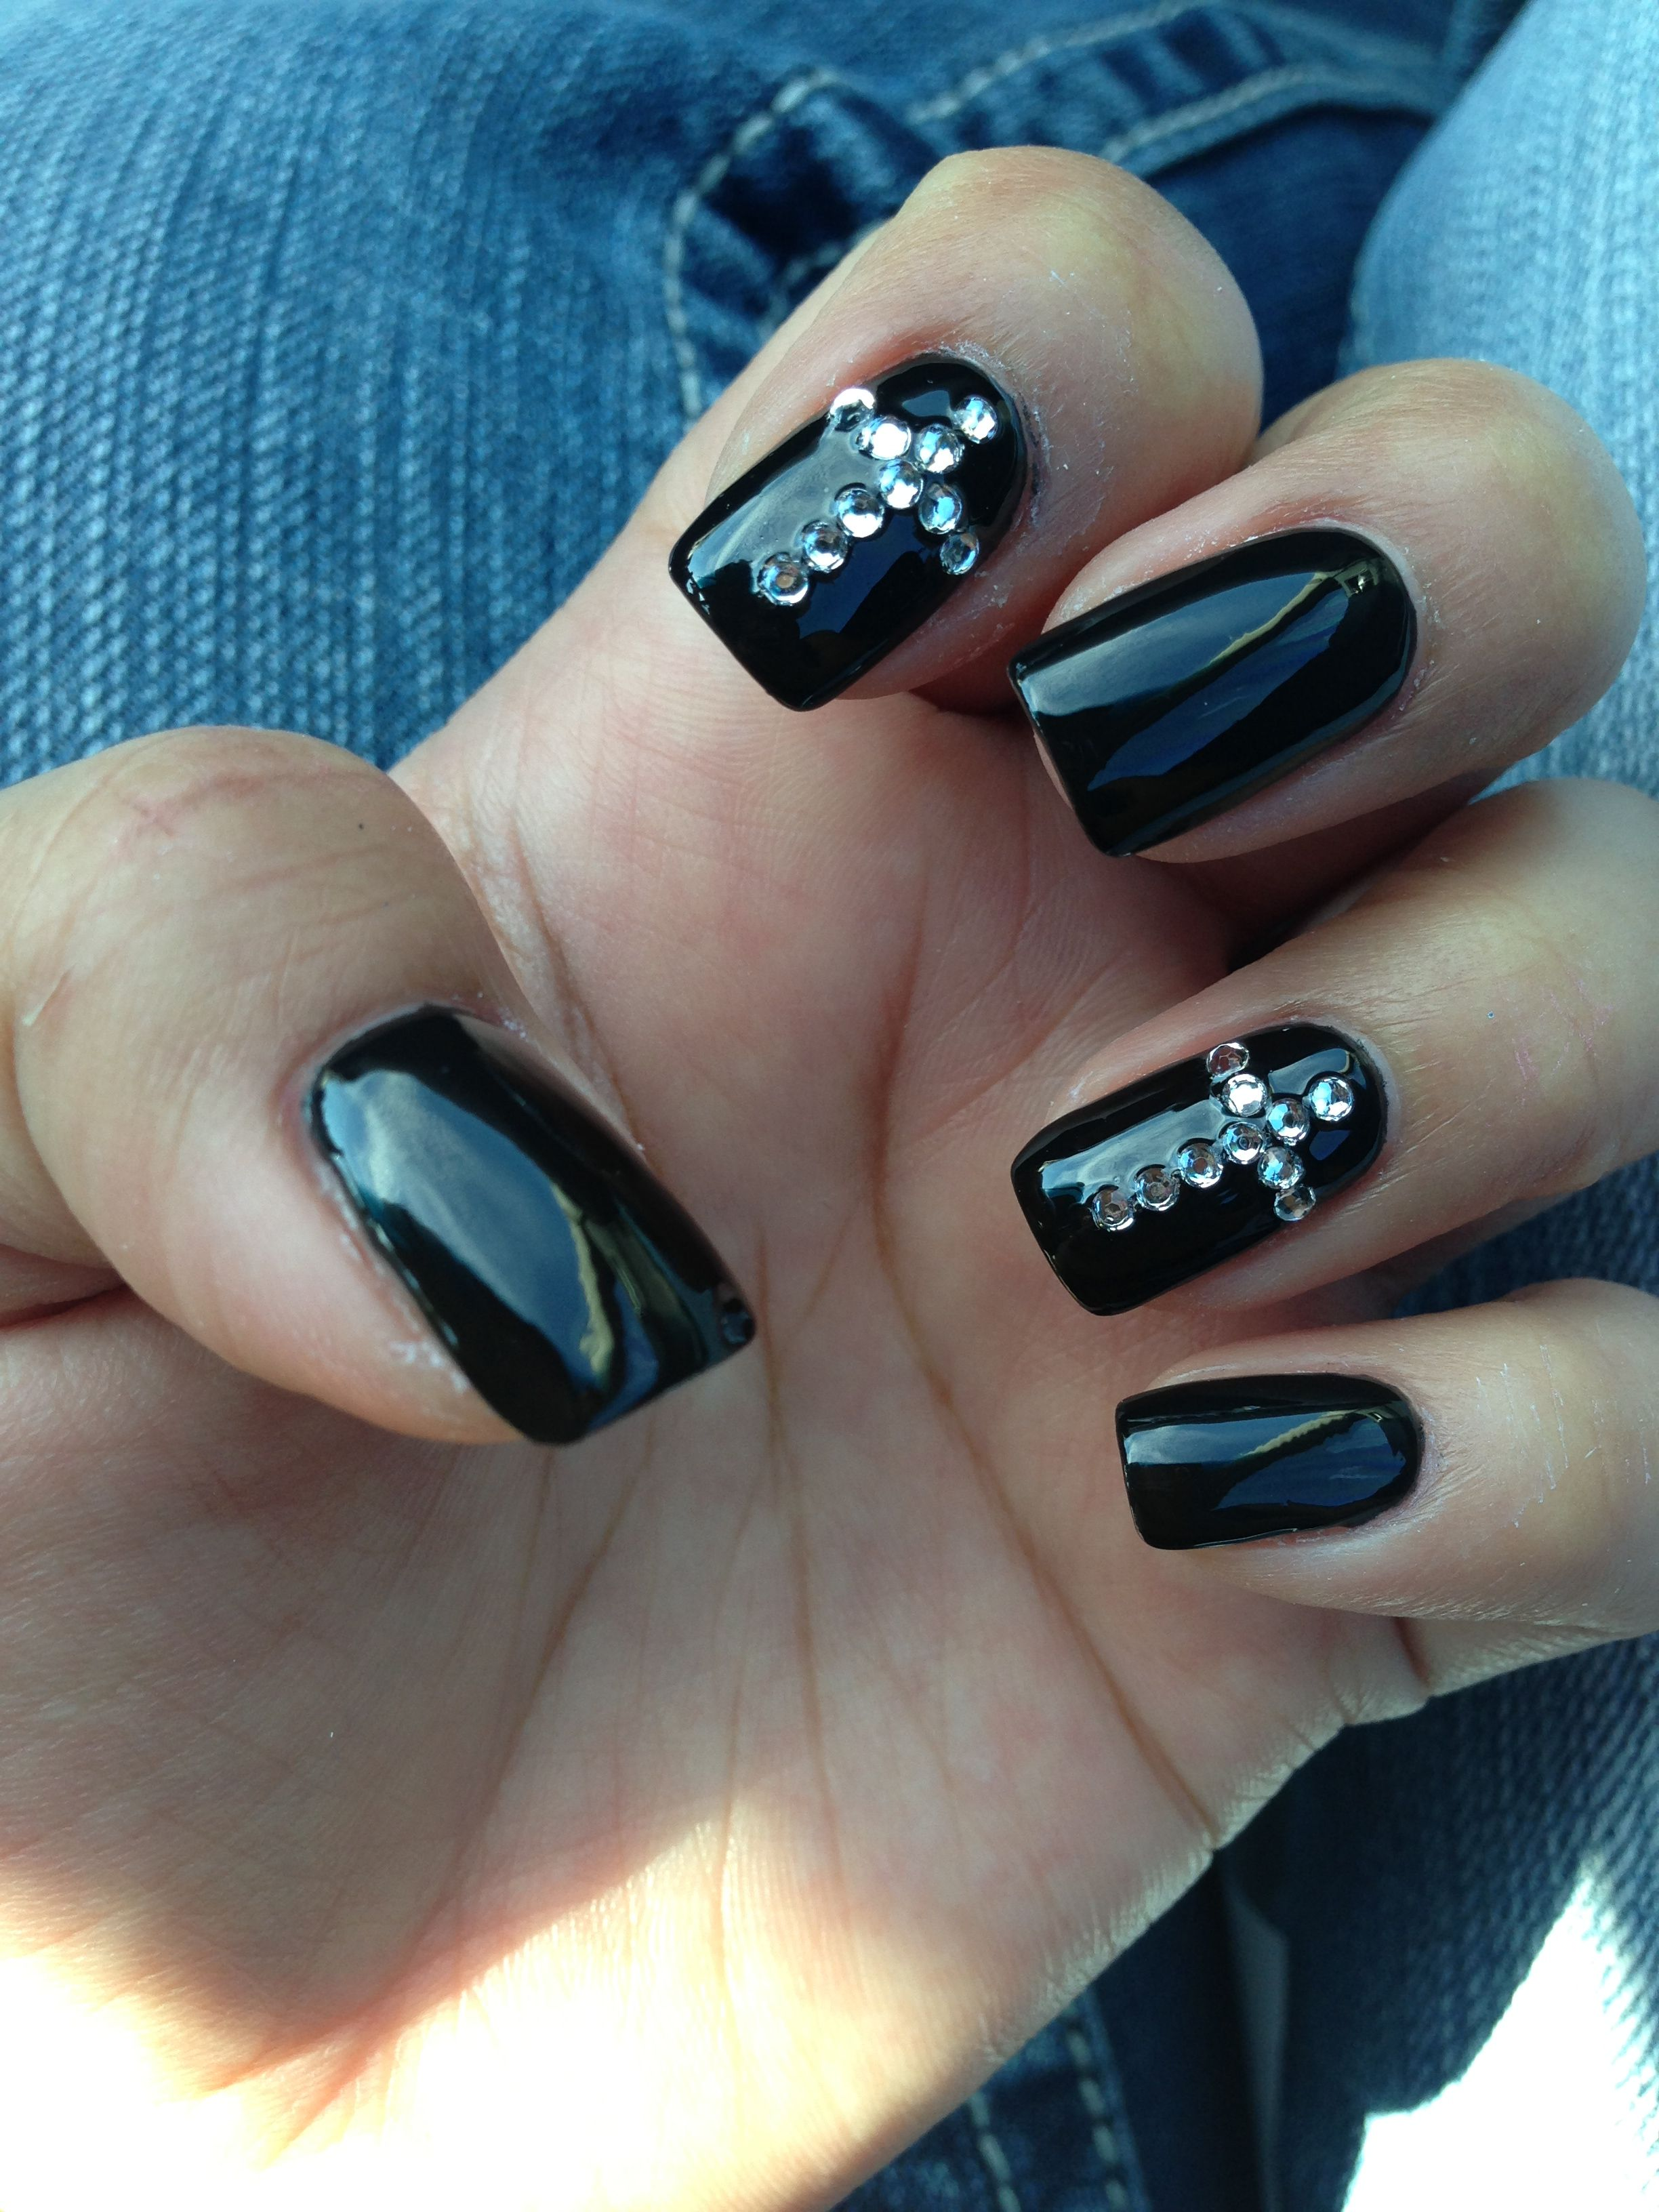 My Nails By: Elite Nails Spa in Hot Springs, AR | Nails | Pinterest ...